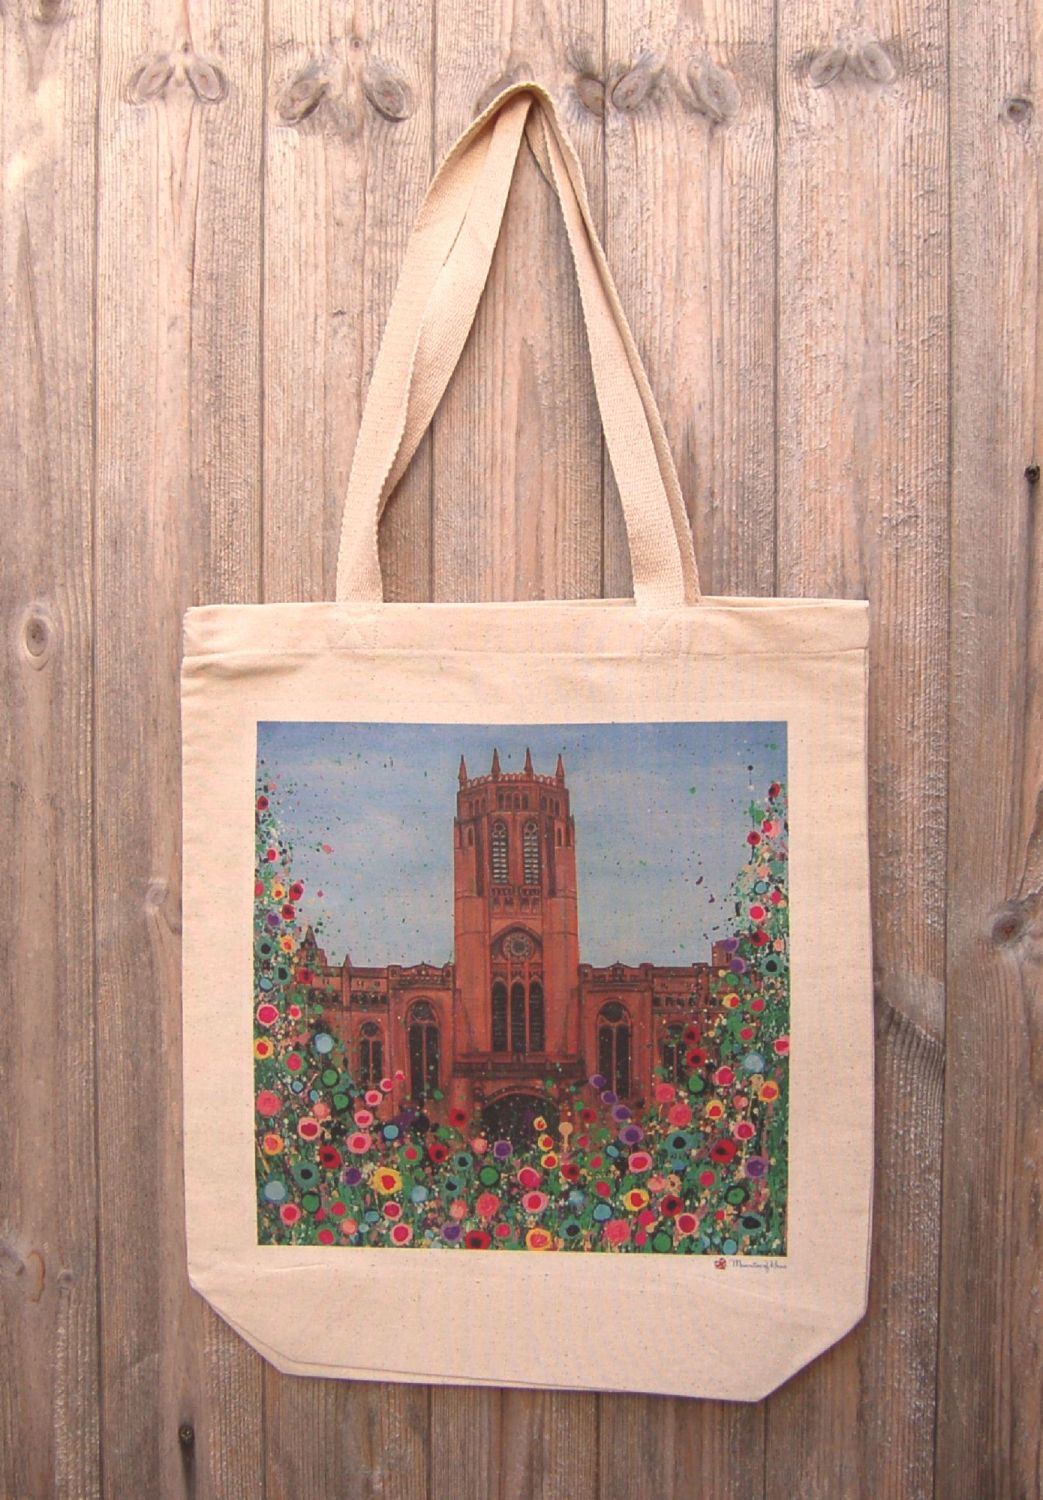 Jo Gough - Liverpool Anglican Cathedral with flowers Tote Bag